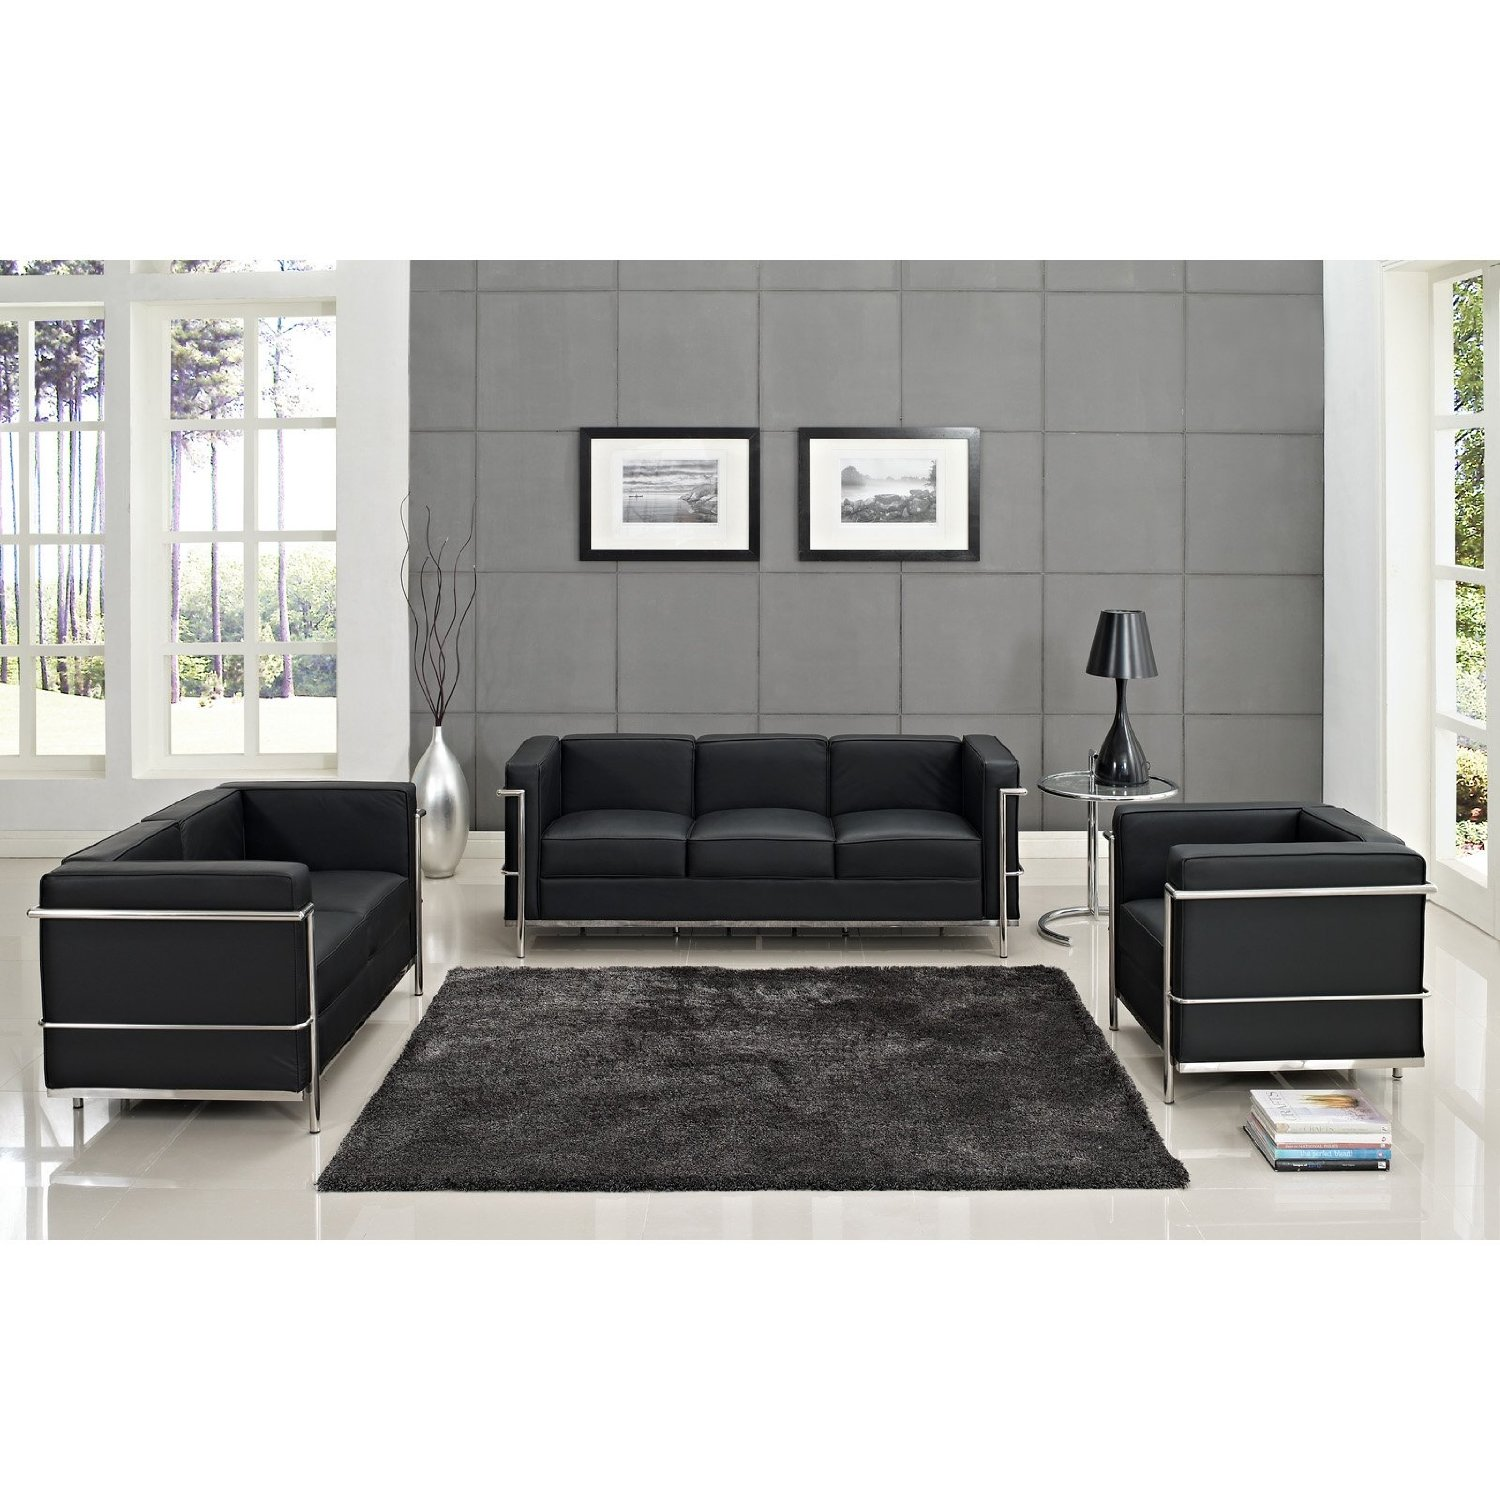 How To Buy Black Leather Sofa line Modern Black Leather Sofa